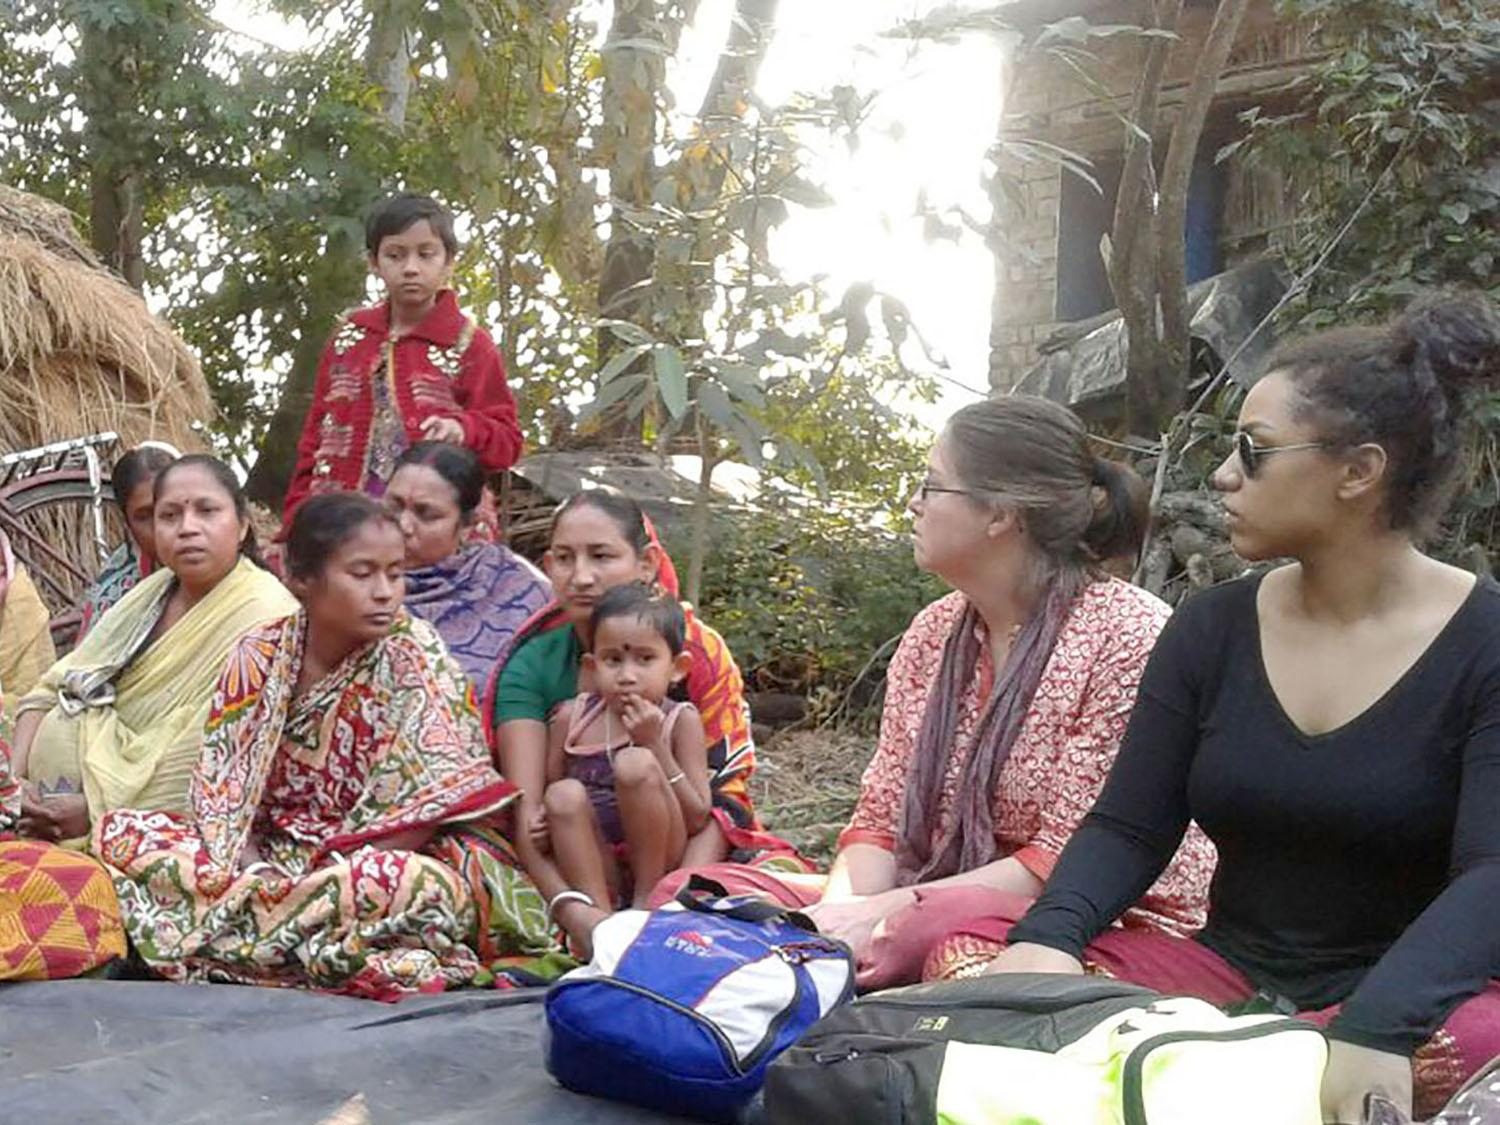 SUNY Oswego class members meeting with families in India